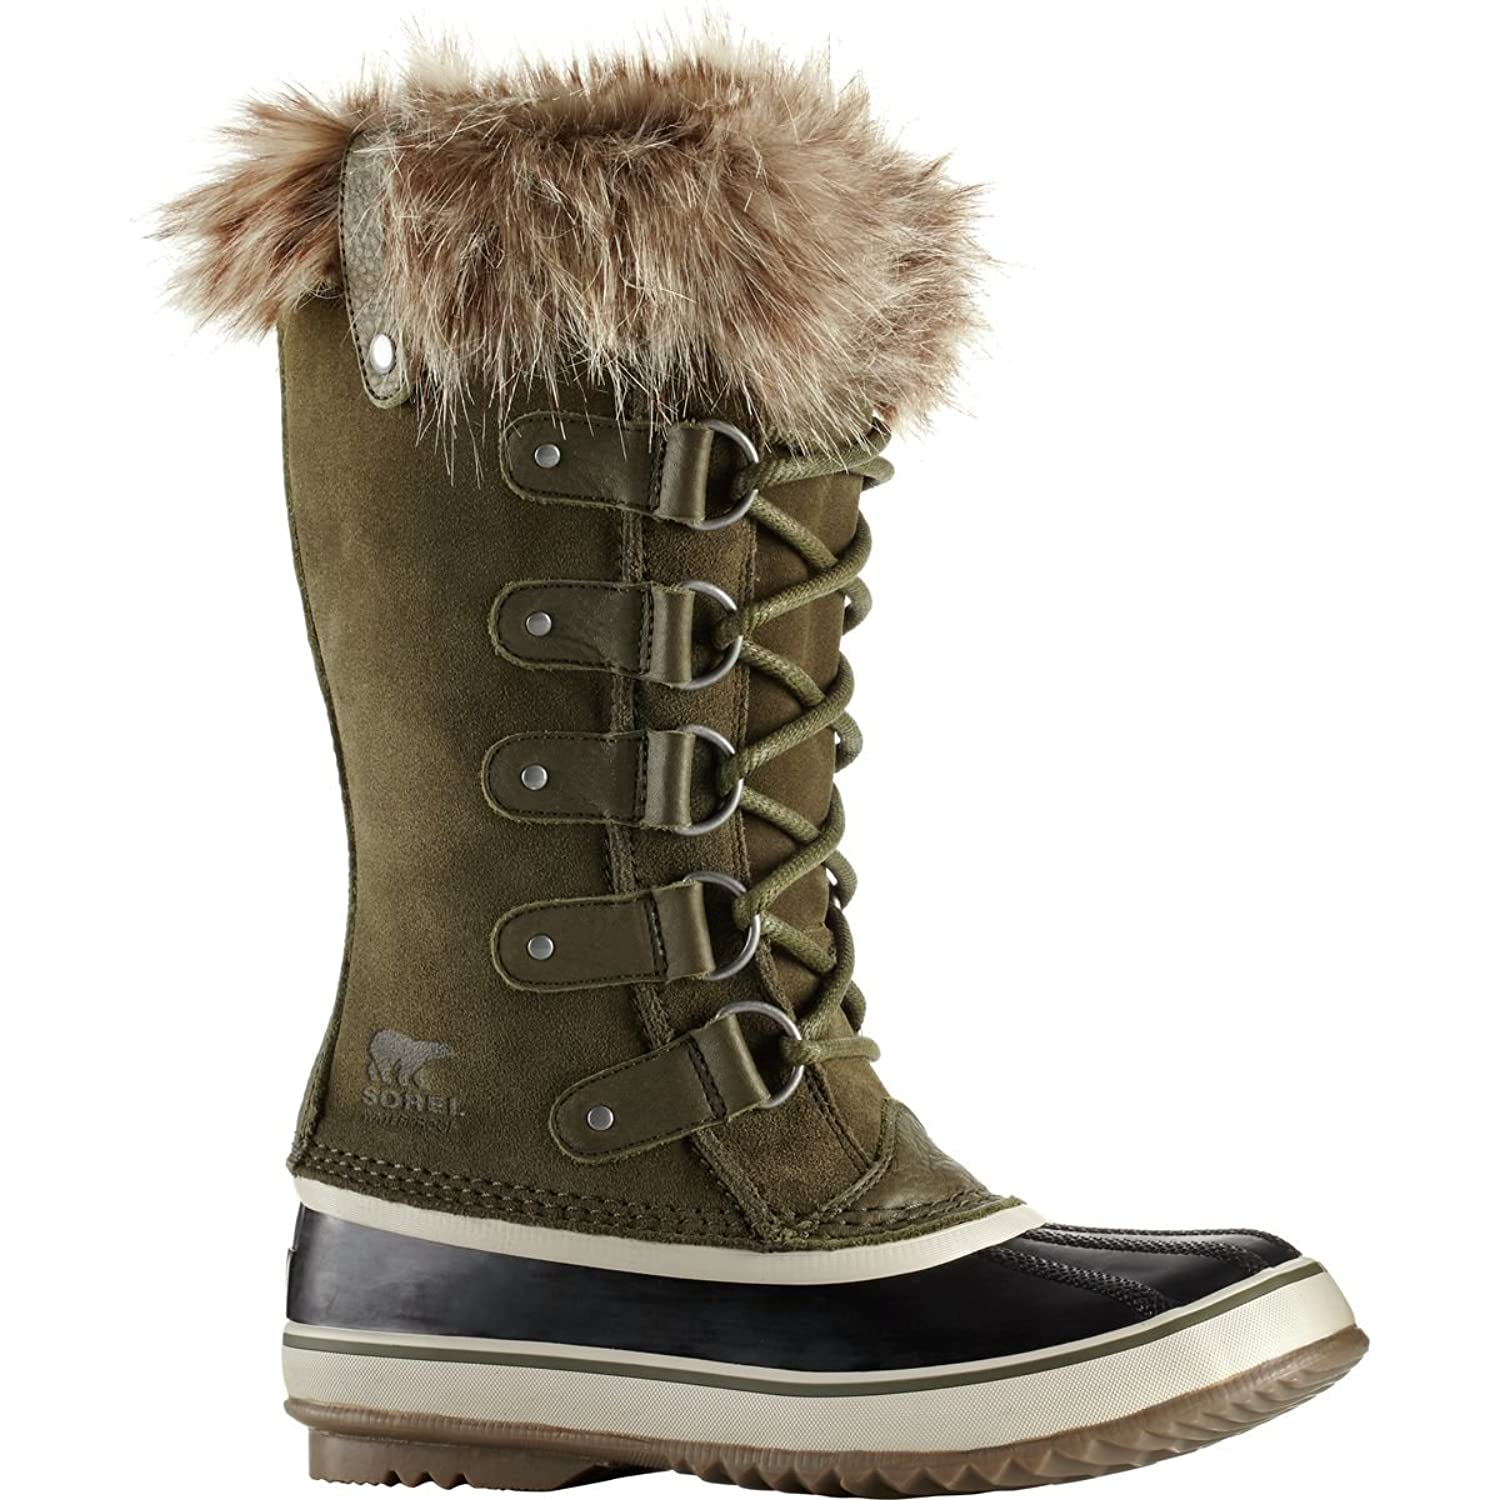 the inmyelement most comfortable you comforter womens ll chelsea this pin find timberland boots boot season